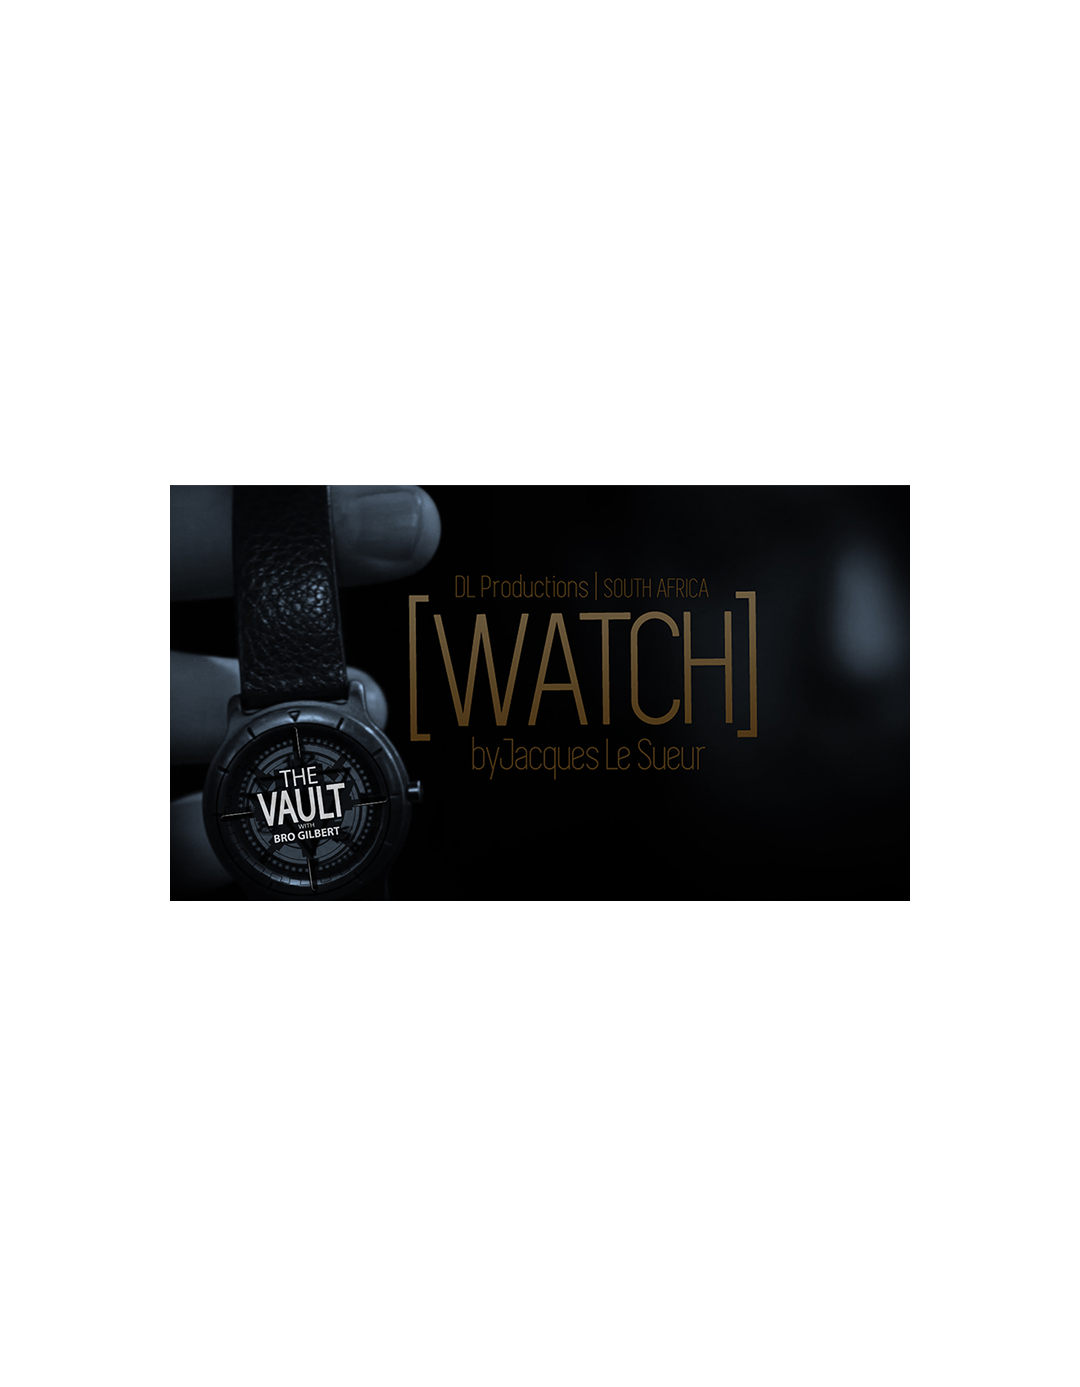 The Vault - WATCH by Jaques Le Sueu - The Vault